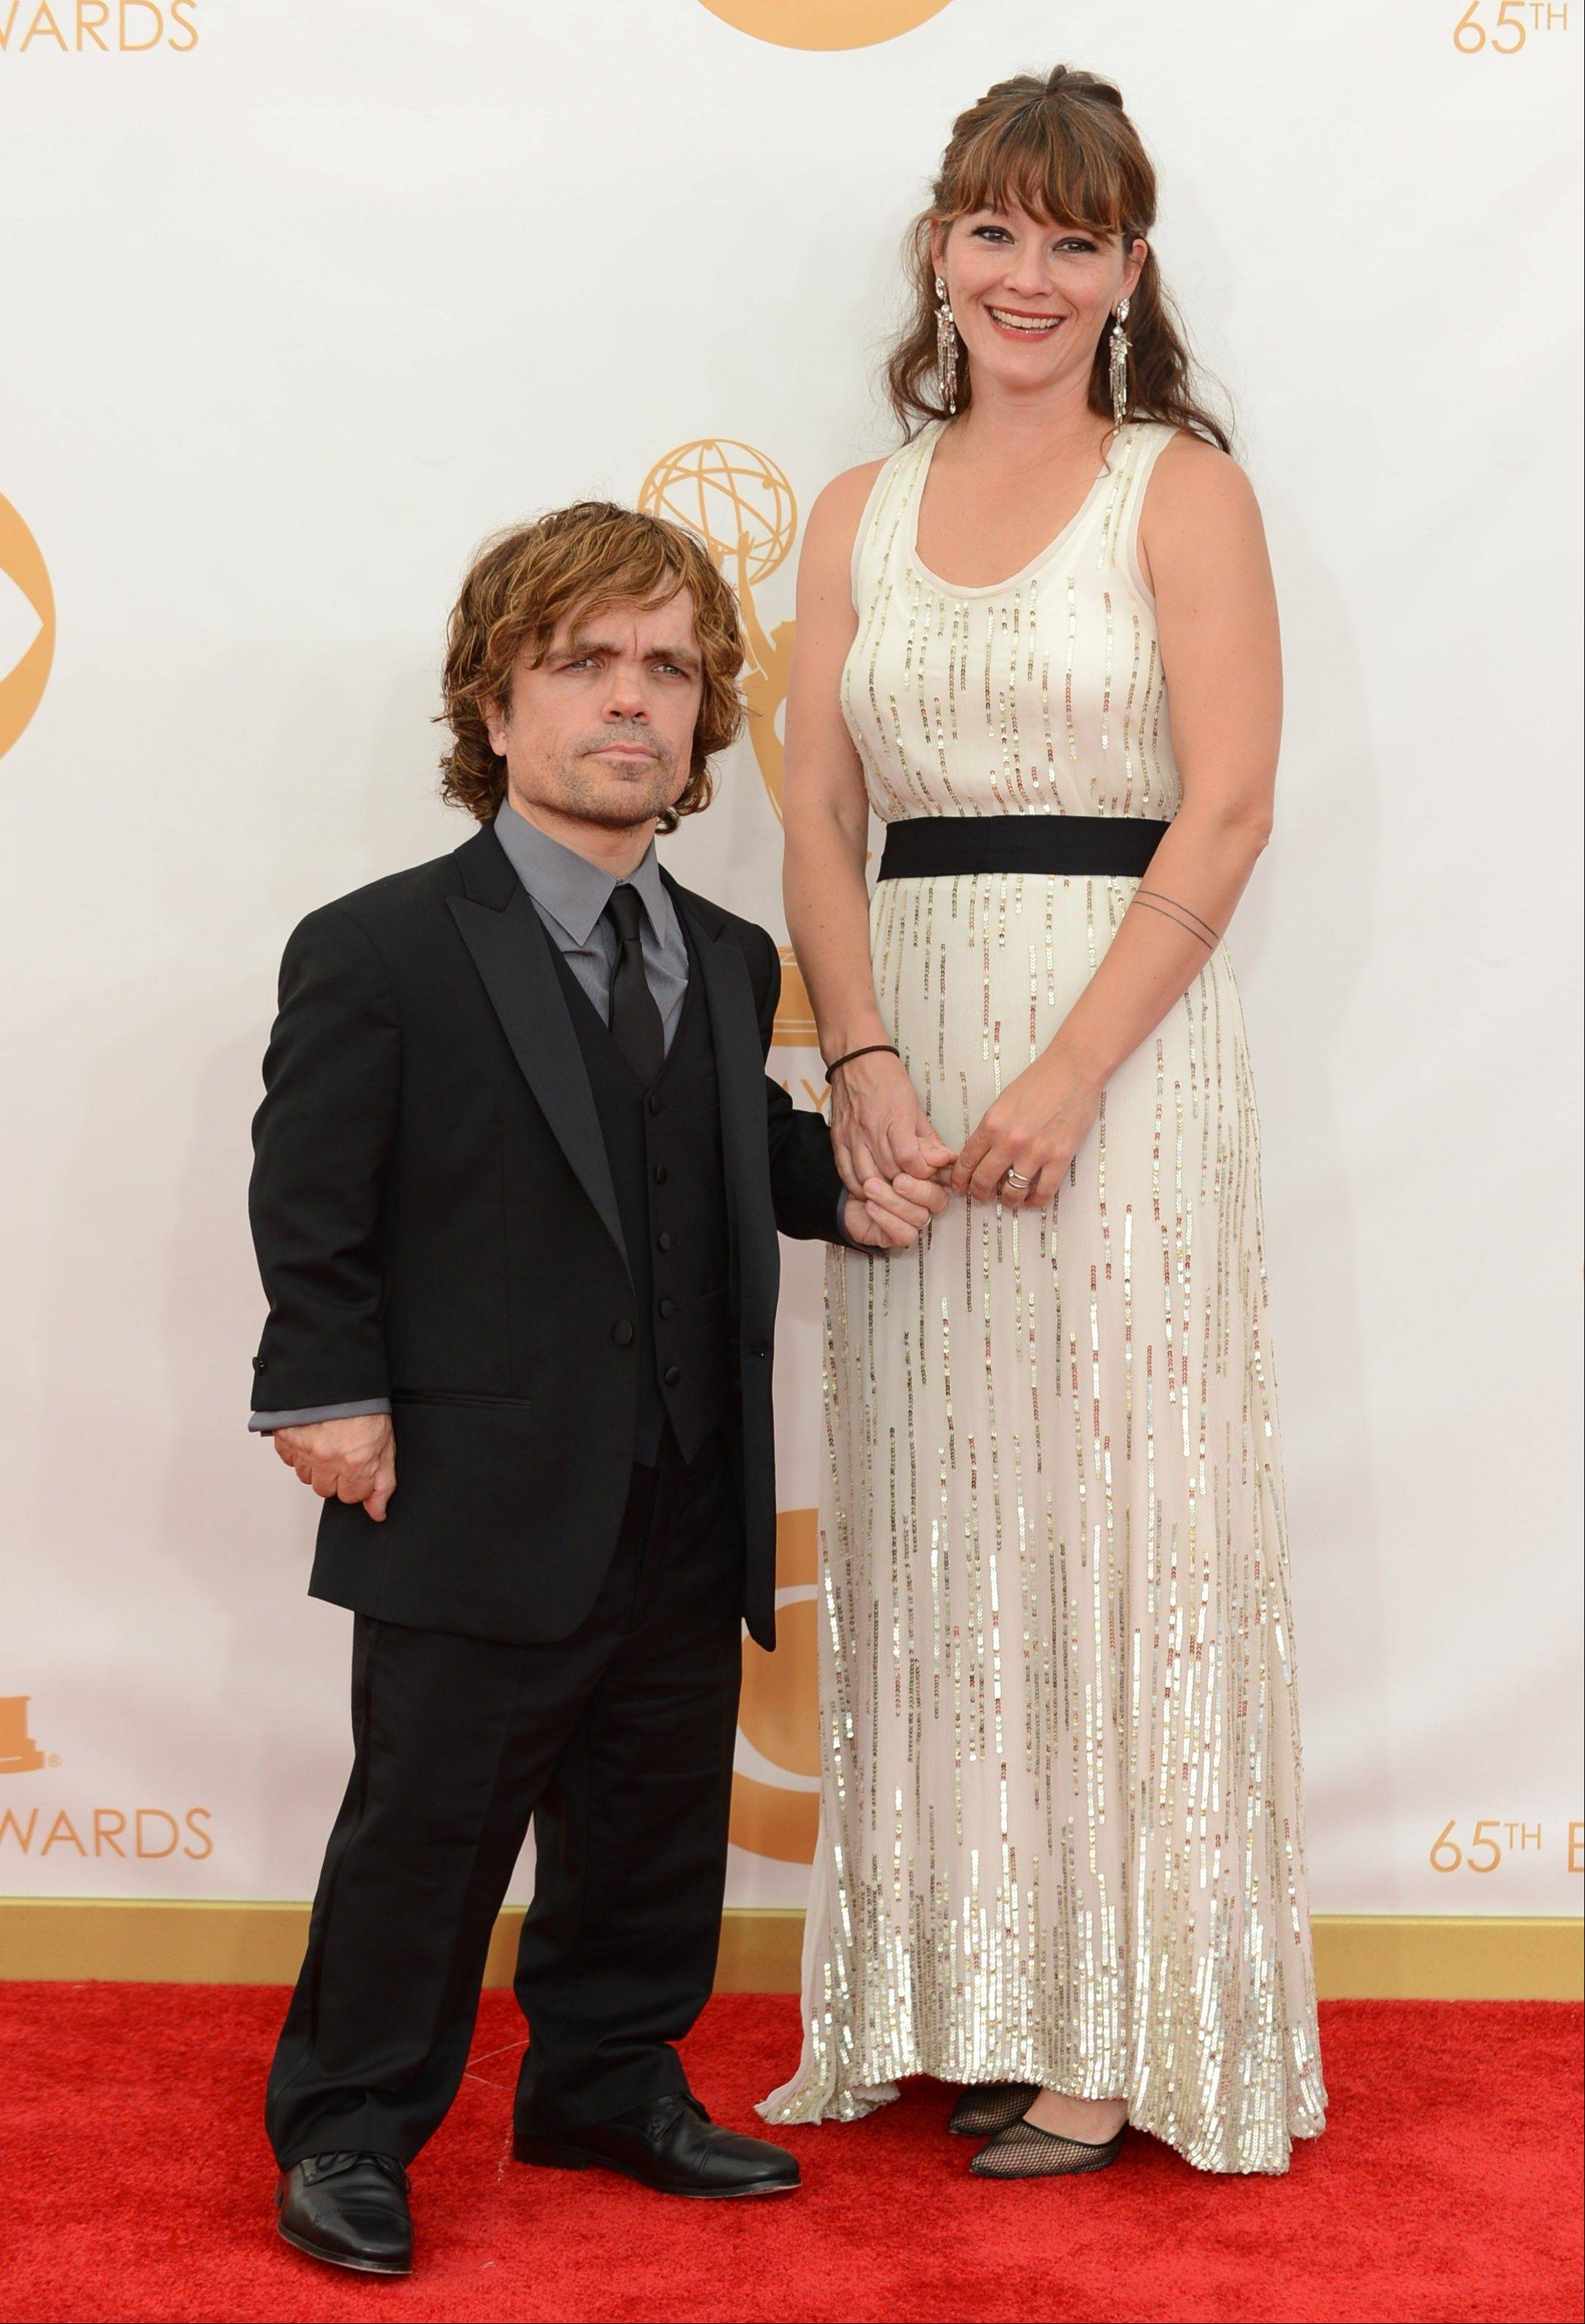 """Game of Thrones"" star Peter Dinklage, left, and his wife Erica Schmidt arrive at the 65th Primetime Emmy Awards at Nokia Theatre on Sunday Sept. 22, 2013, in Los Angeles."